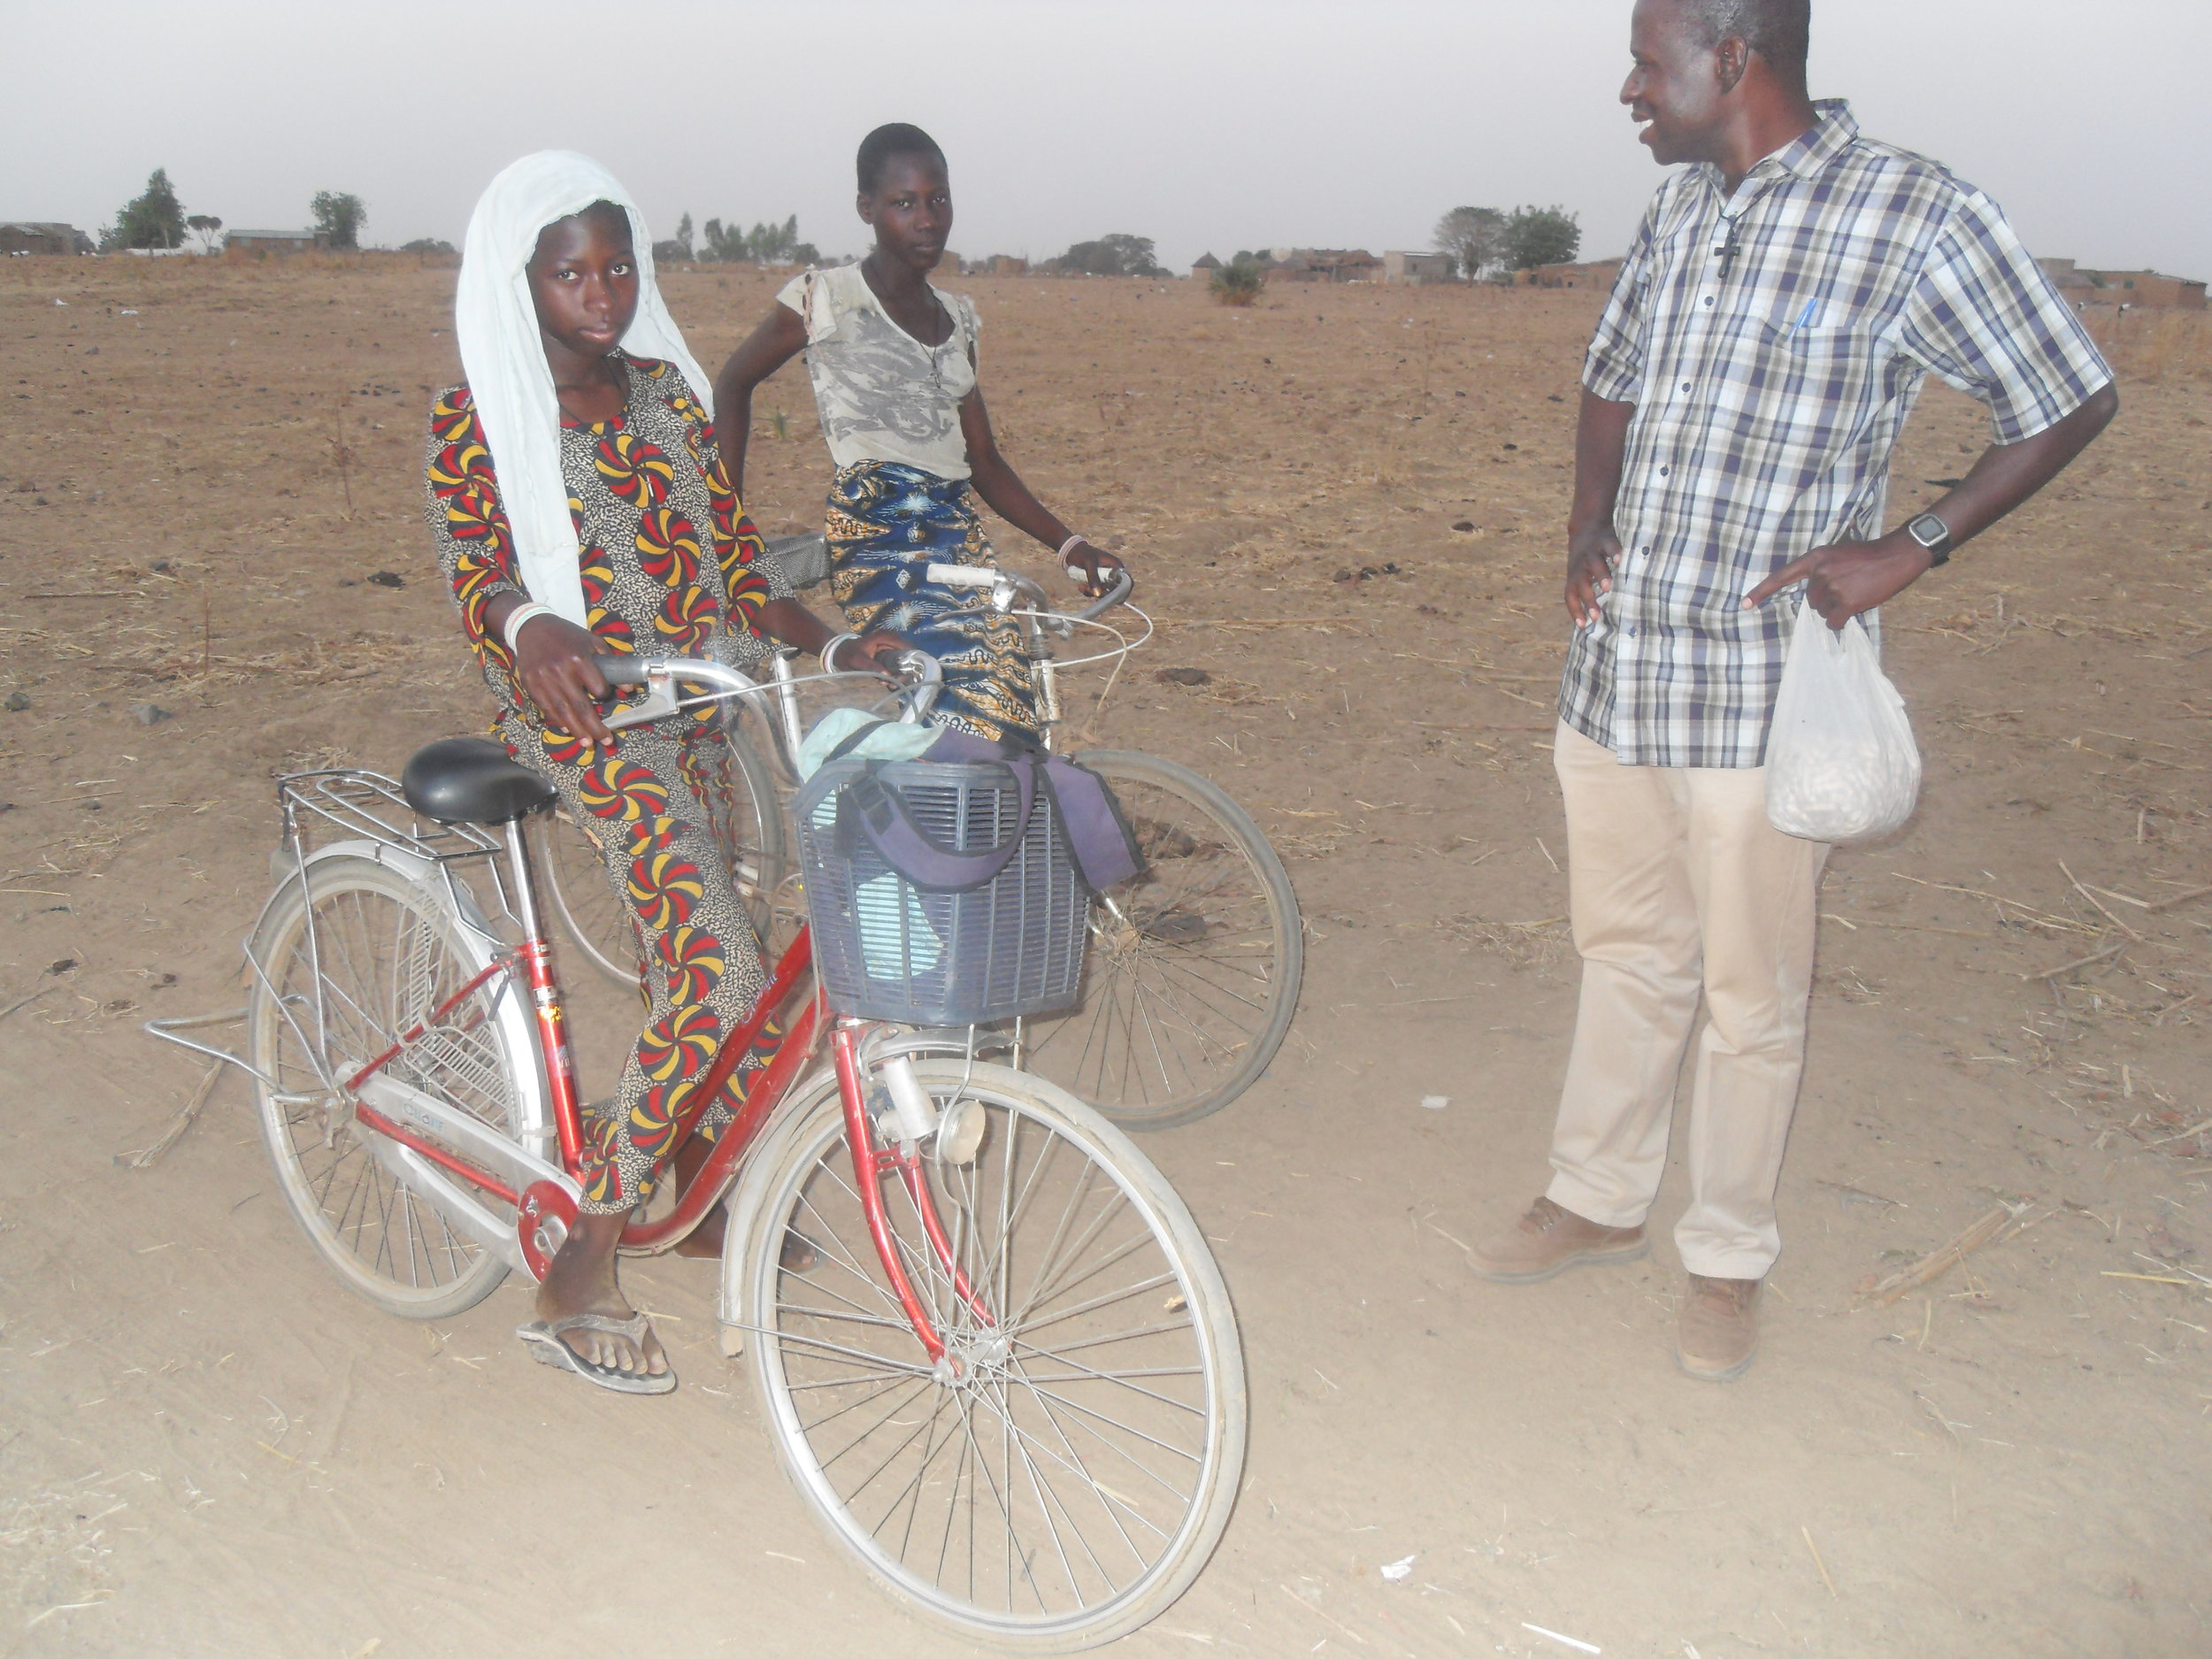 Bicycles! - What would they do without them? …